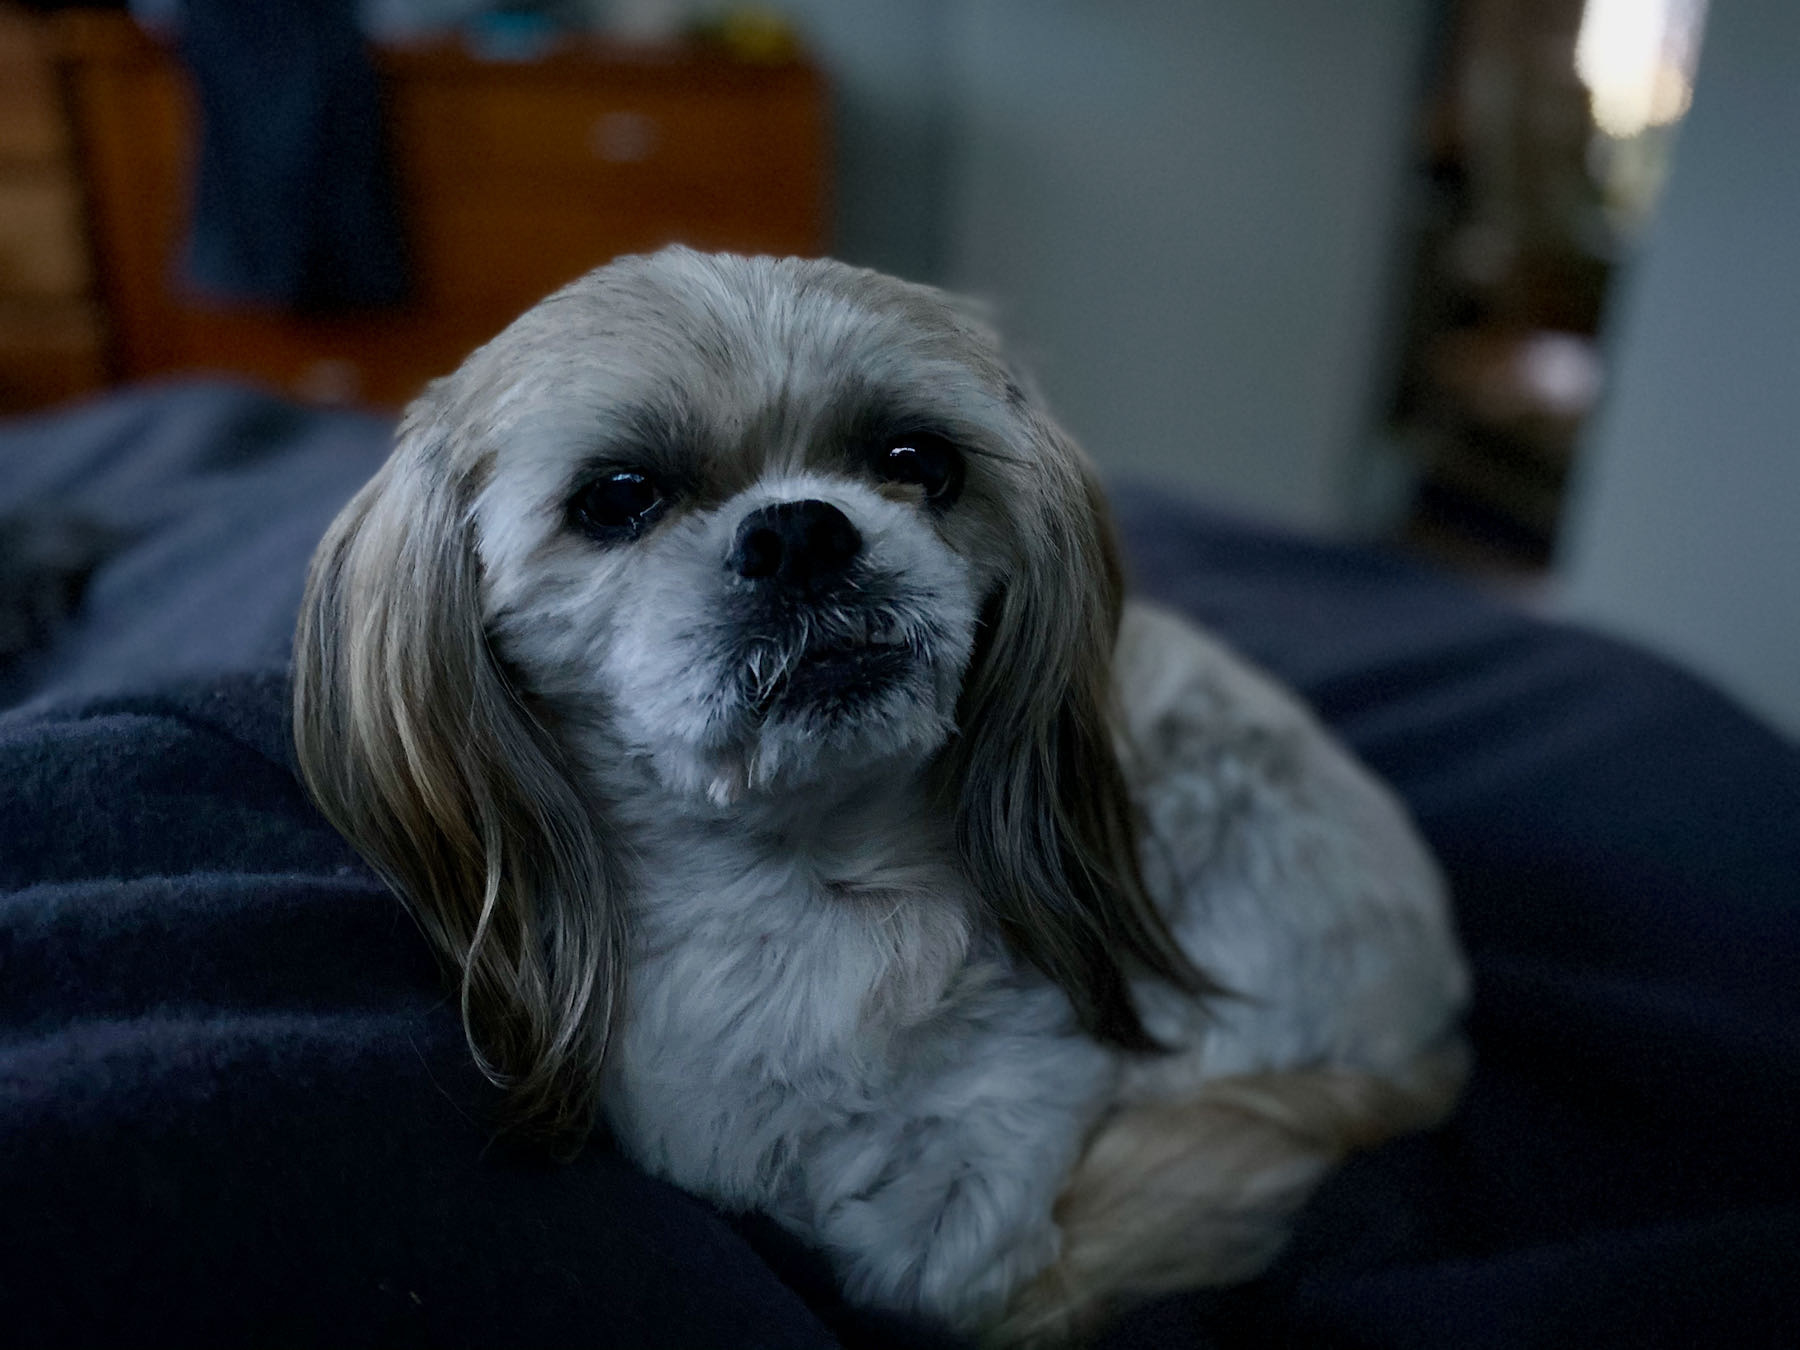 Small white dog on the bed, in a darkish room.